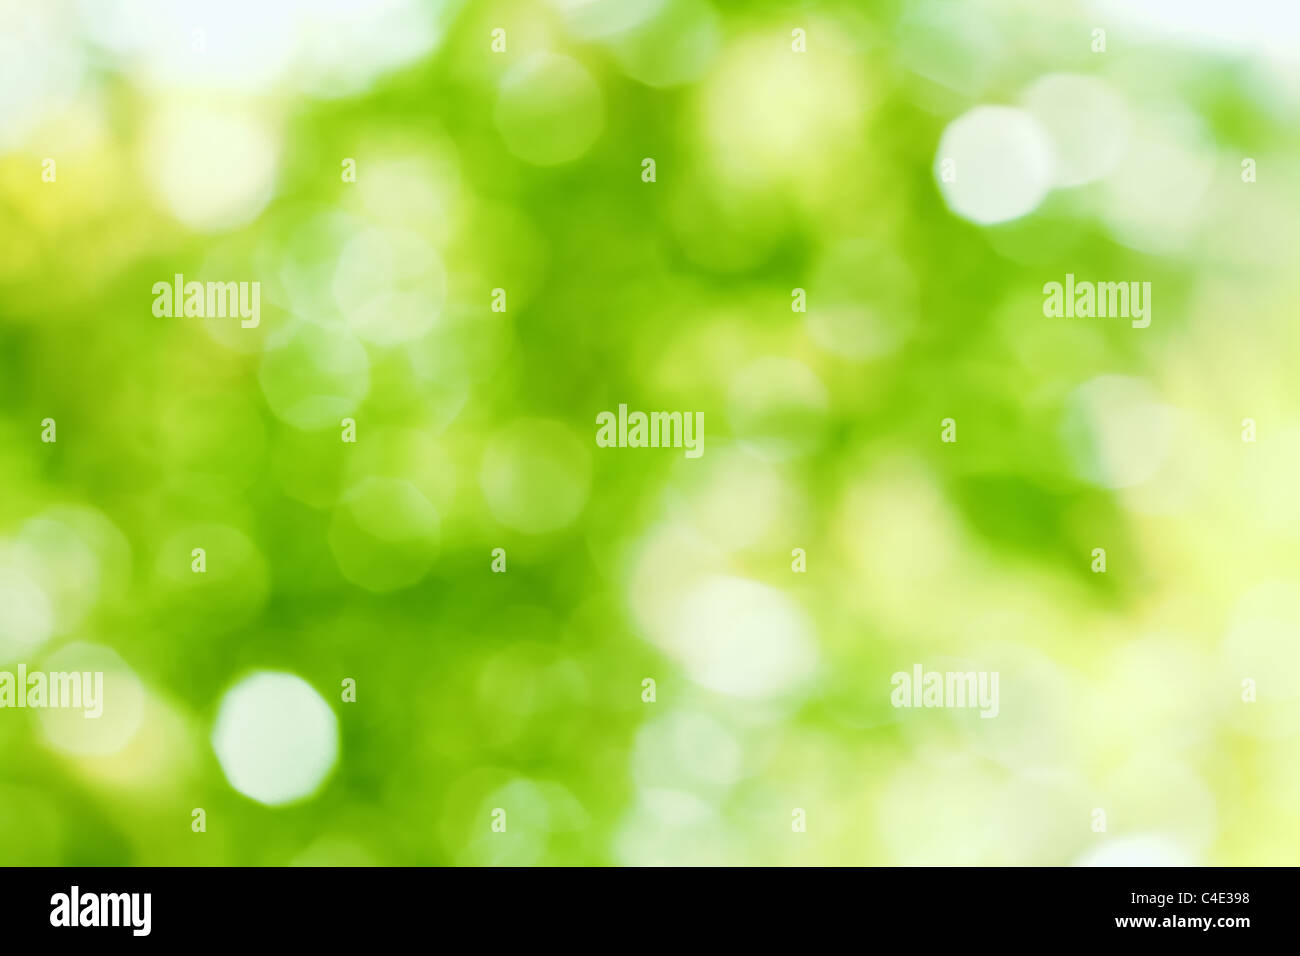 Green bokeh abstract light from nature. - Stock Image